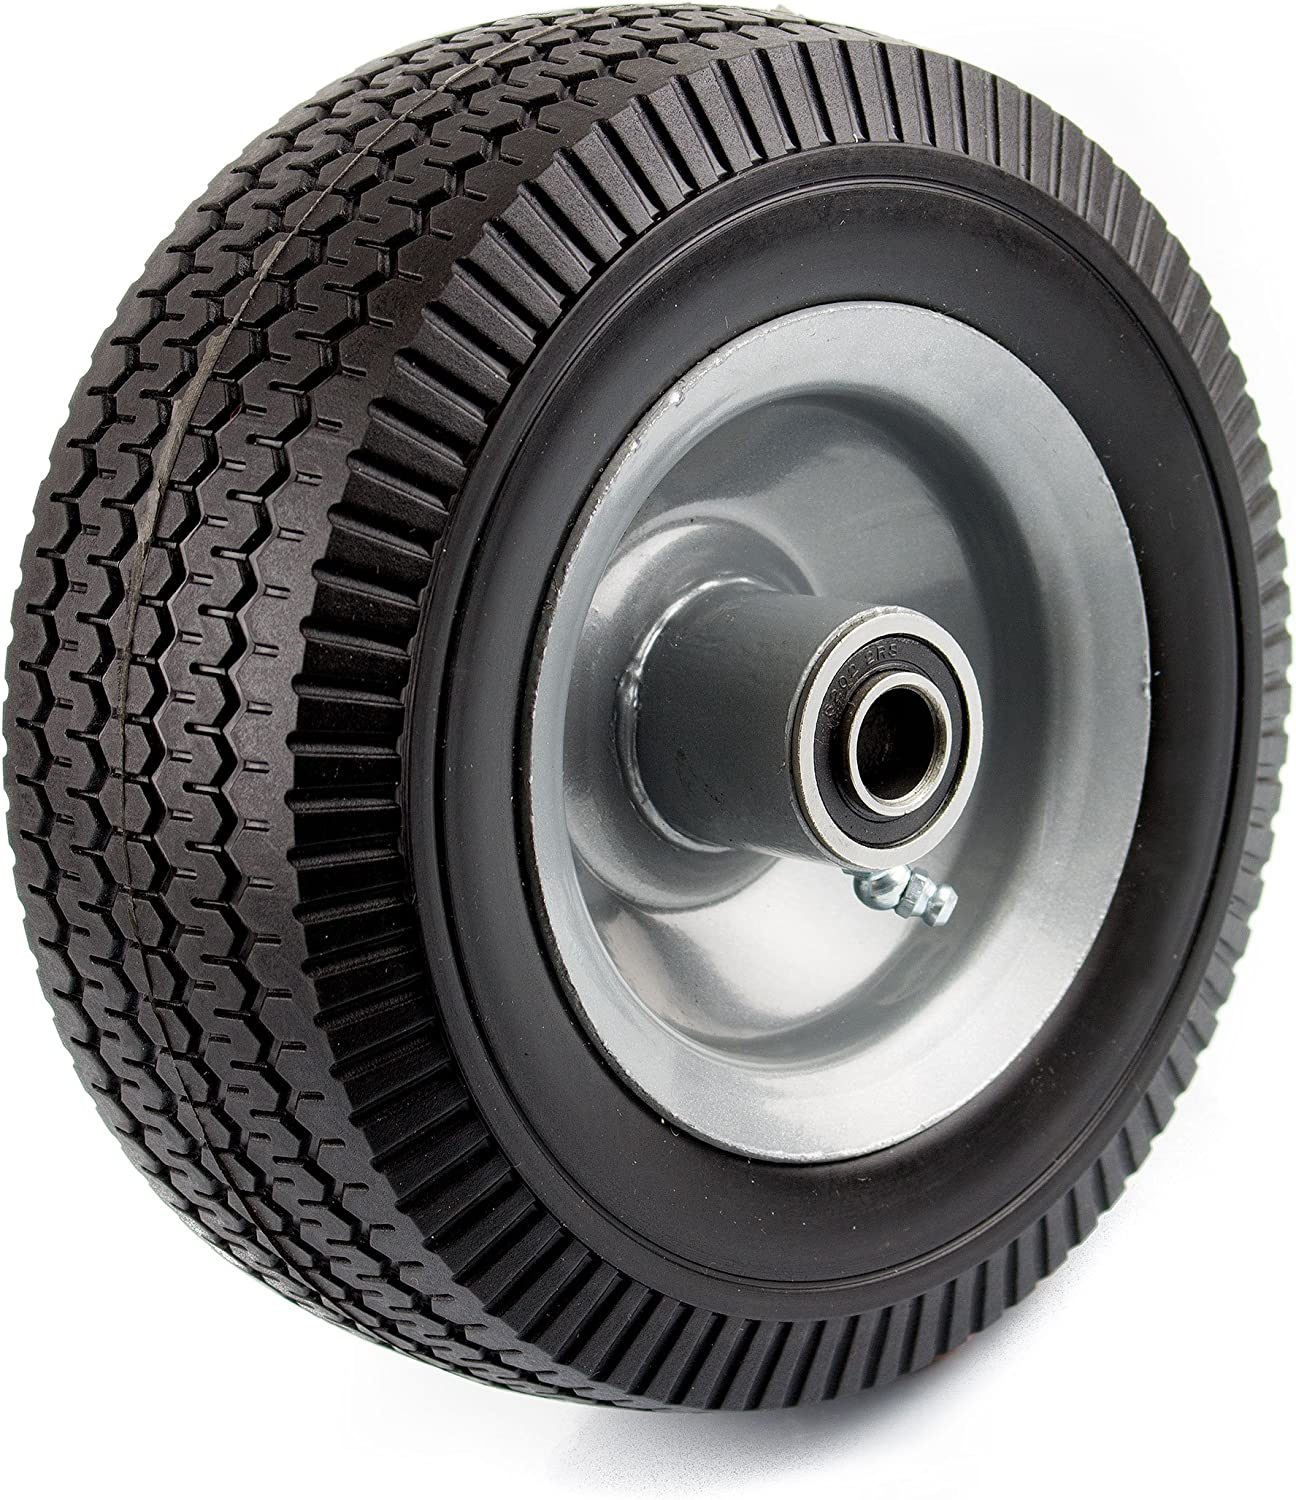 NK WFF8 Heavy Duty 8-Inch Solid Rubber Flat Free Tubeless Hand Truck/Utility Tire Wheel